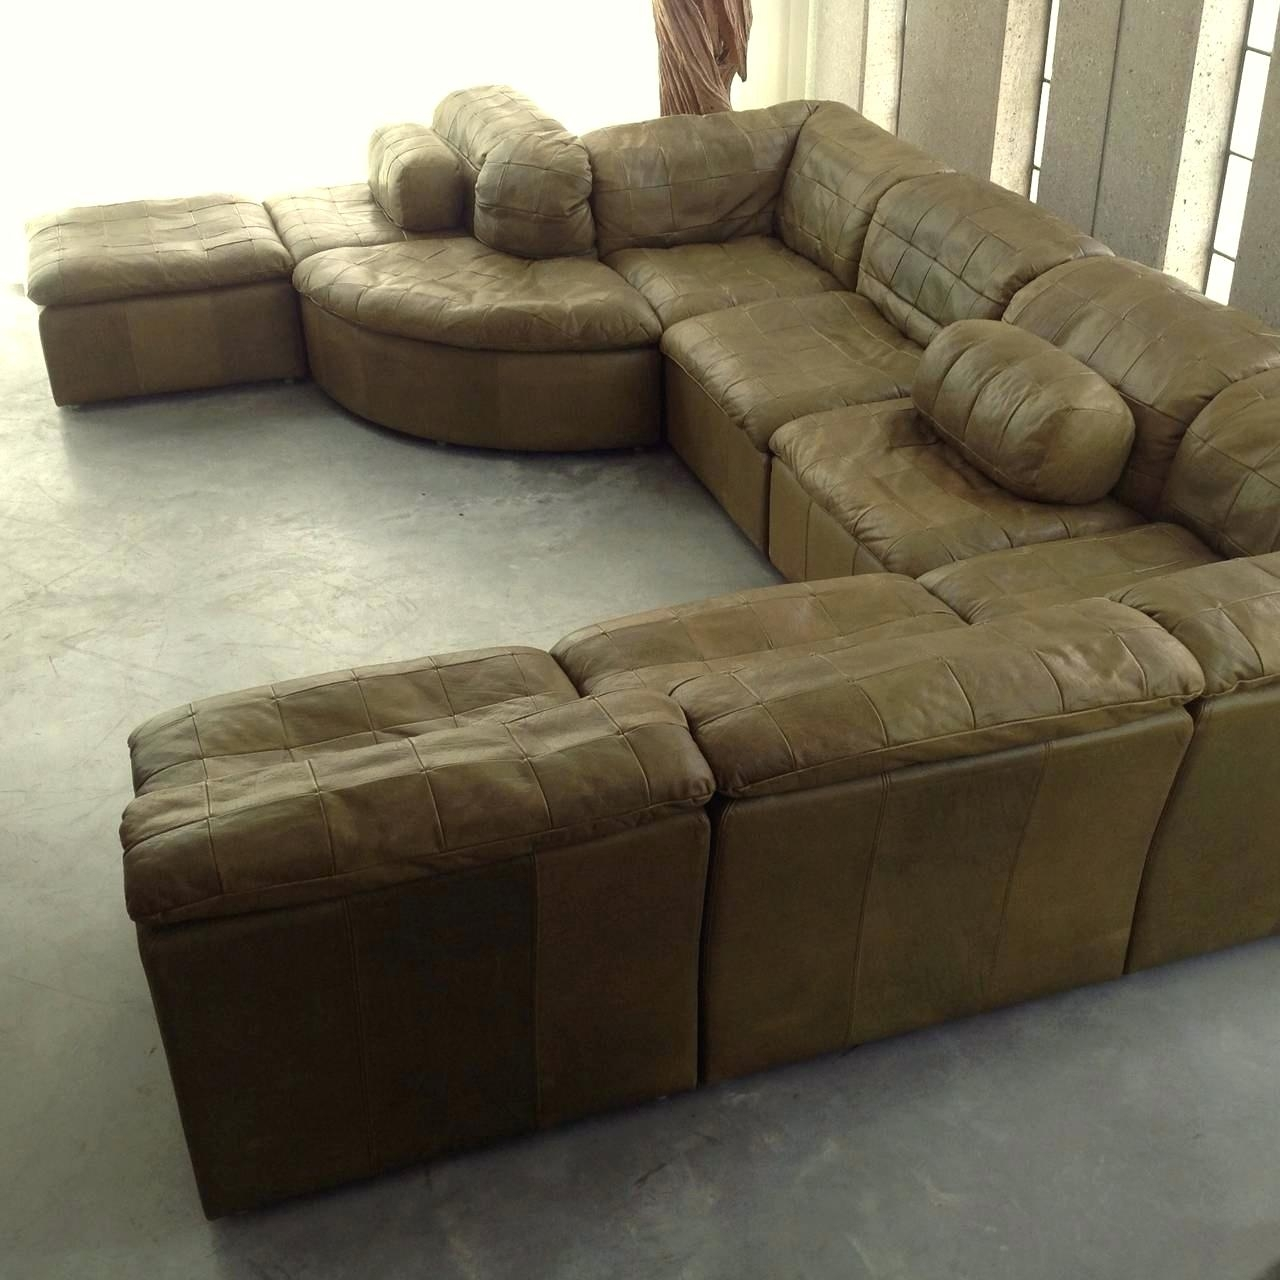 Green Sectional Sas Couches For Sale Sofas Bay Wi Teal Leather For Green Bay Wi Sectional Sofas (View 7 of 10)